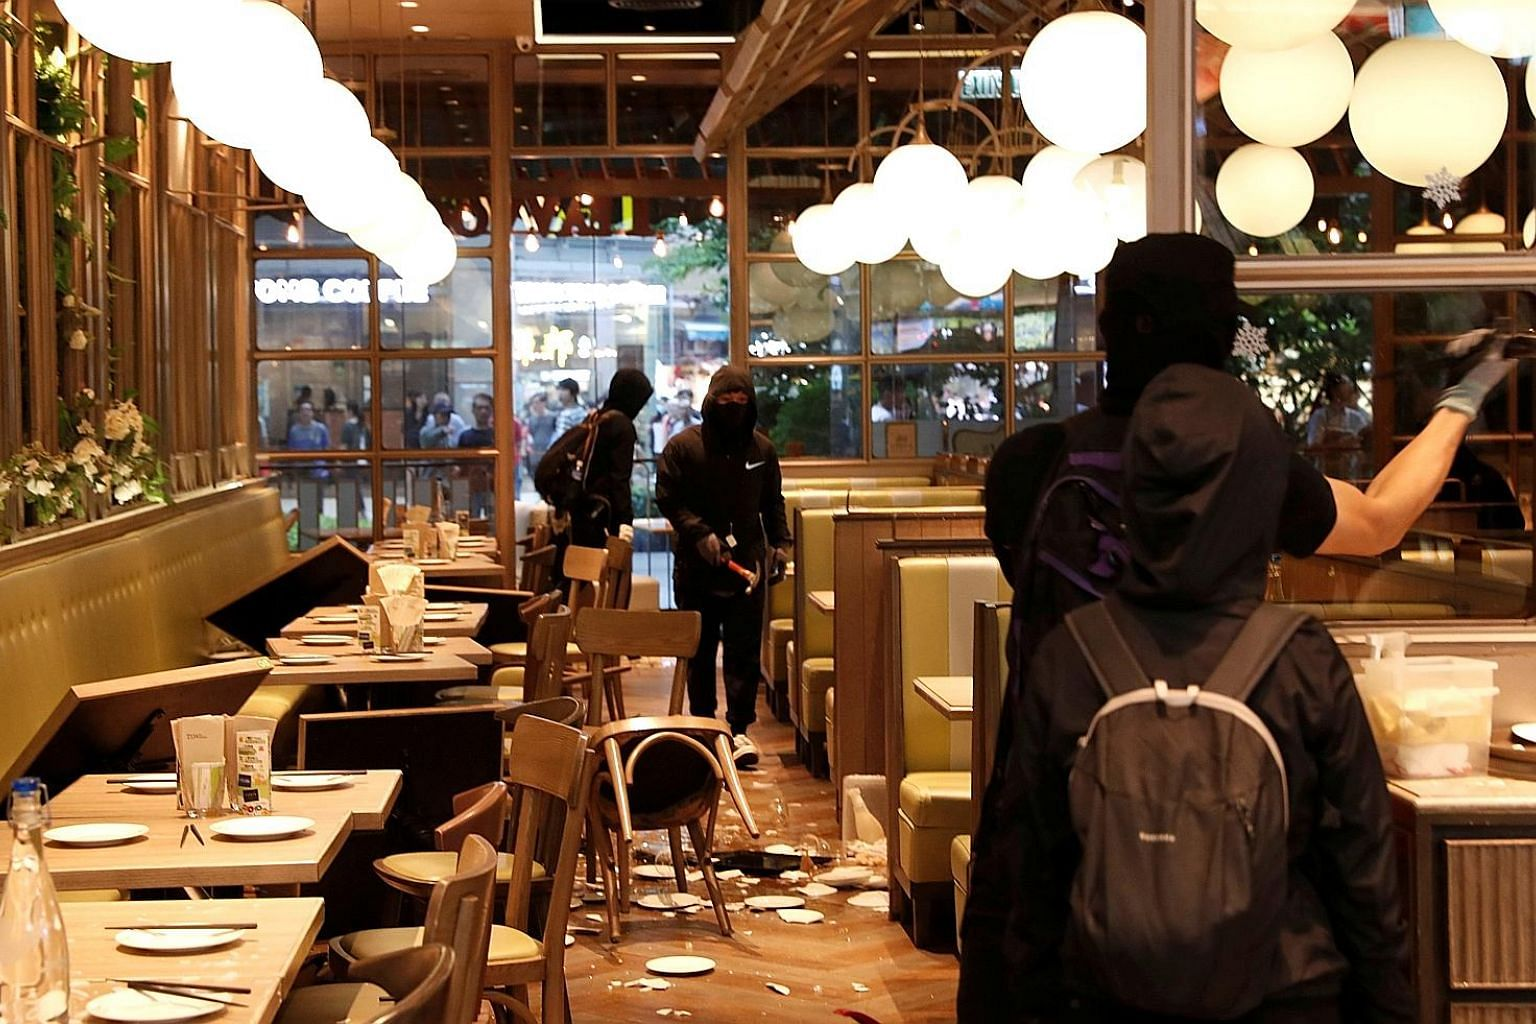 Protesters vandalising a restaurant during an anti-government demonstration at a shopping mall in Tsuen Wan, Hong Kong, yesterday. Some protesters had trashed several shops in Sha Tin linked to the Maxim Catering Group, including a Starbucks and a Ma